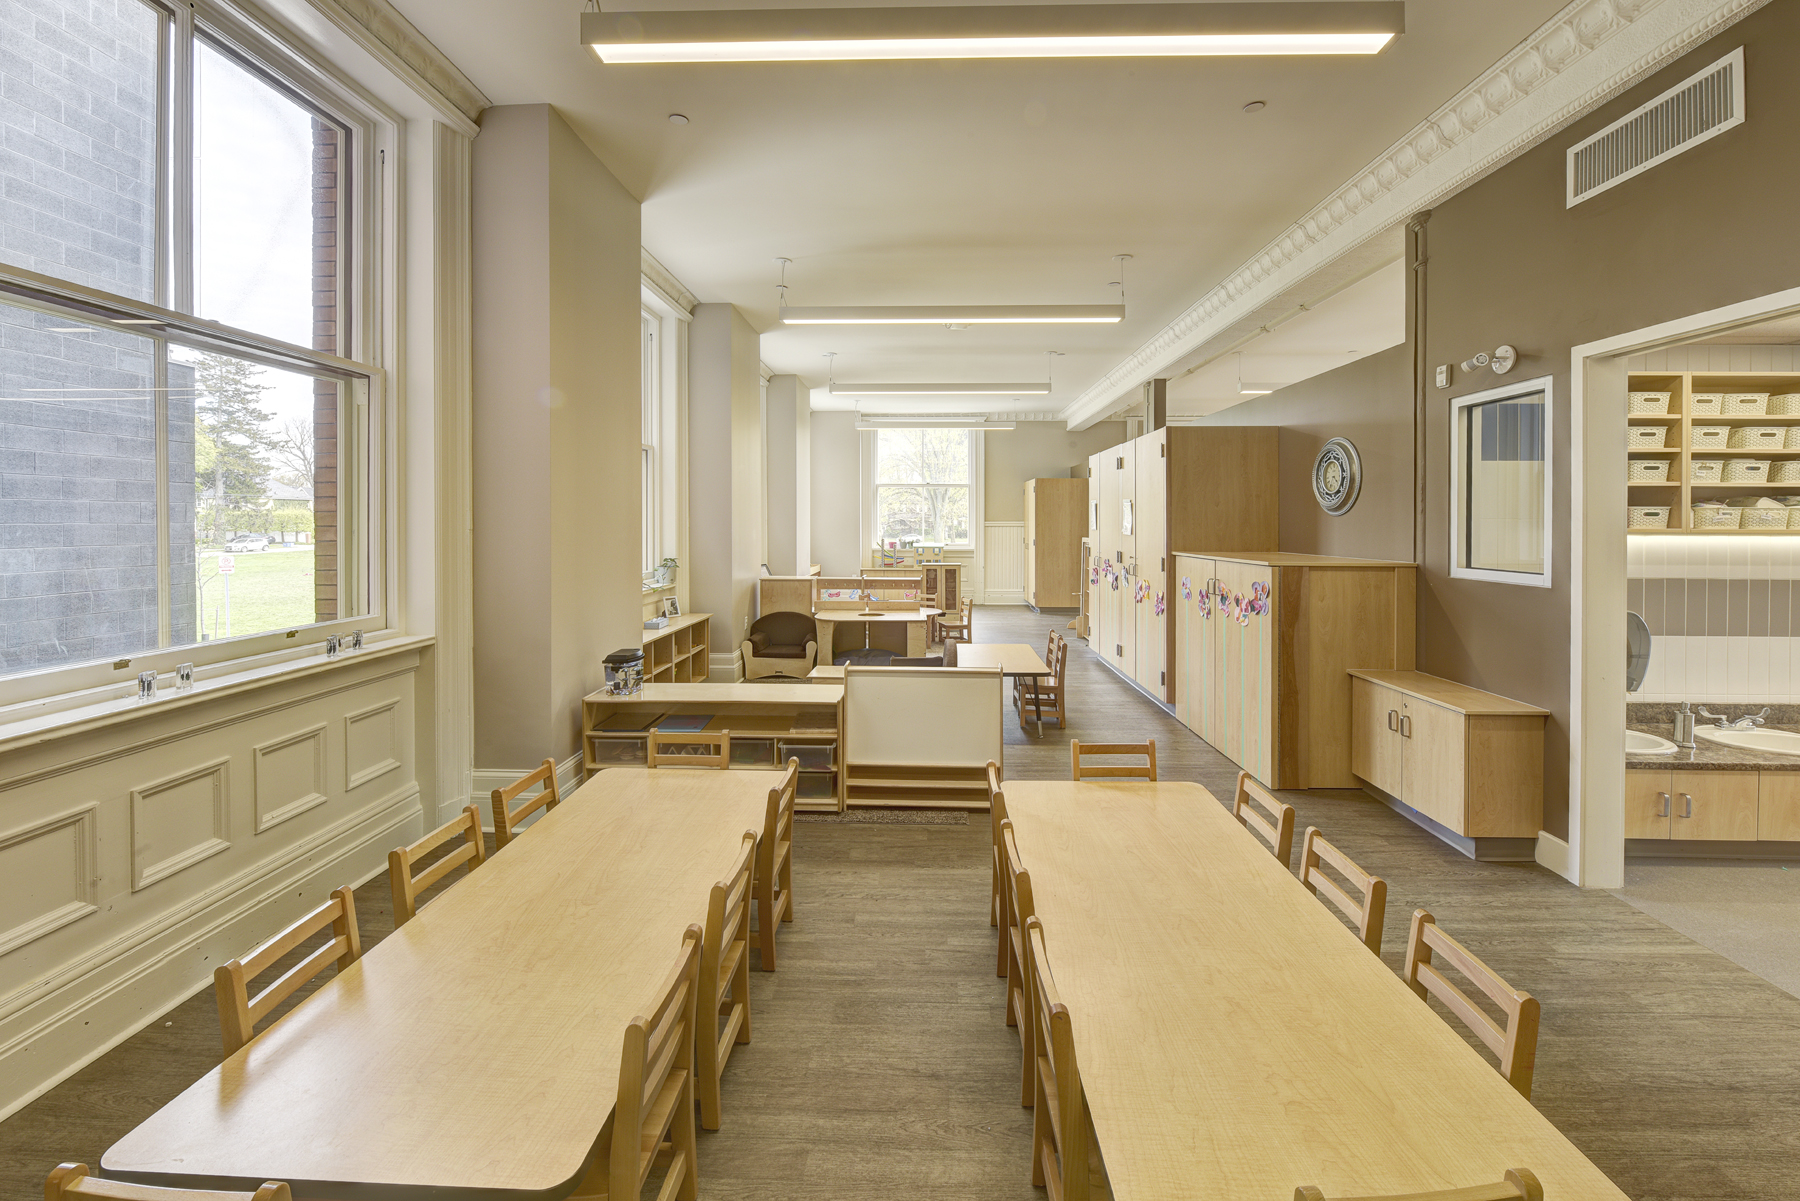 Children's classroom with long wooden tables and chairs, bookshelves, storage cupboards and large bright windows